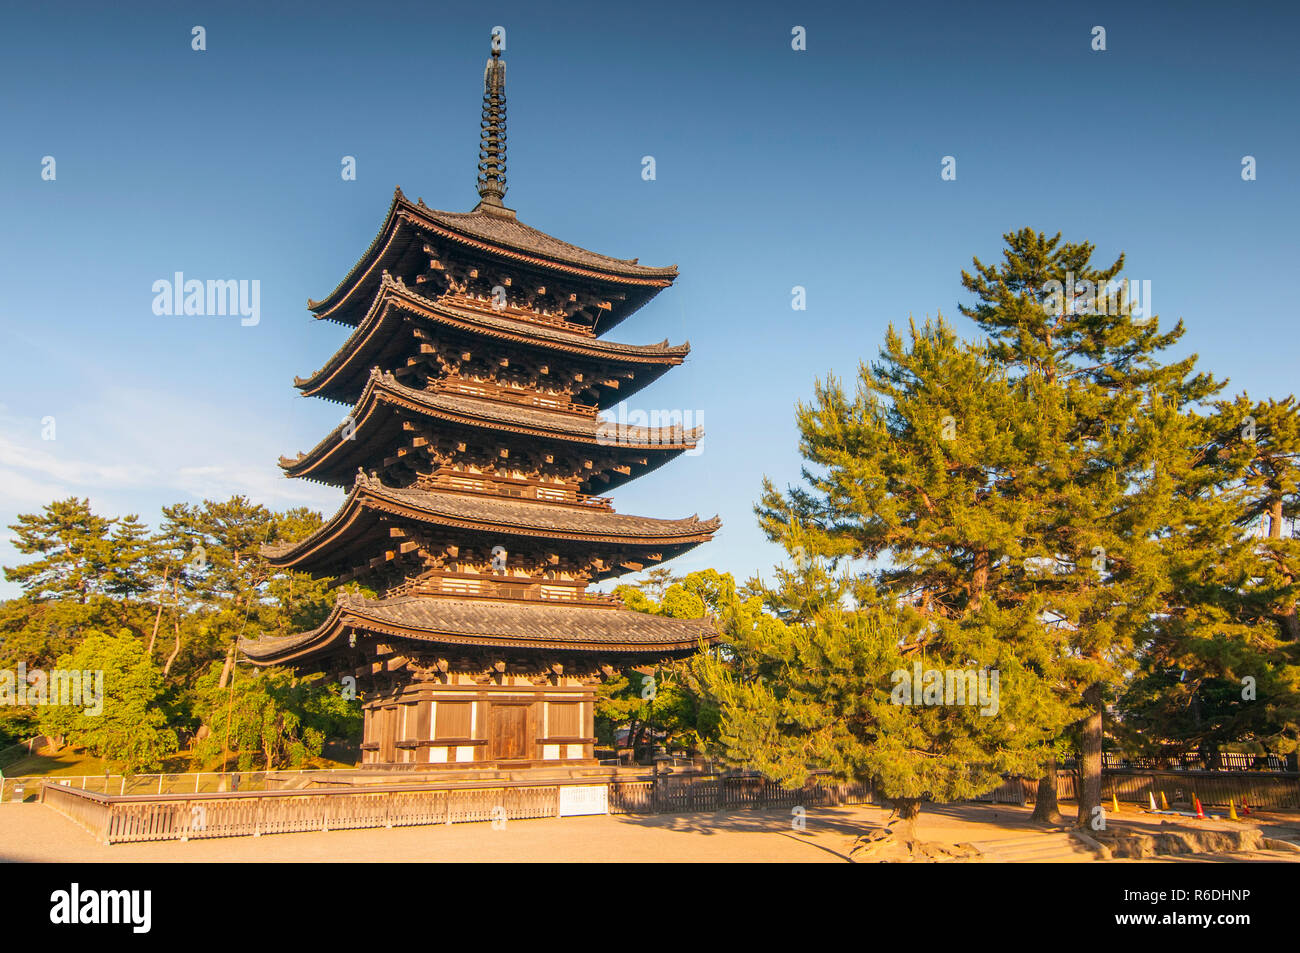 Kofuku-Ji Is One Of The Historic Monuments Of Ancient Nara As Designated By Unesco In Nara, Japan - Stock Image